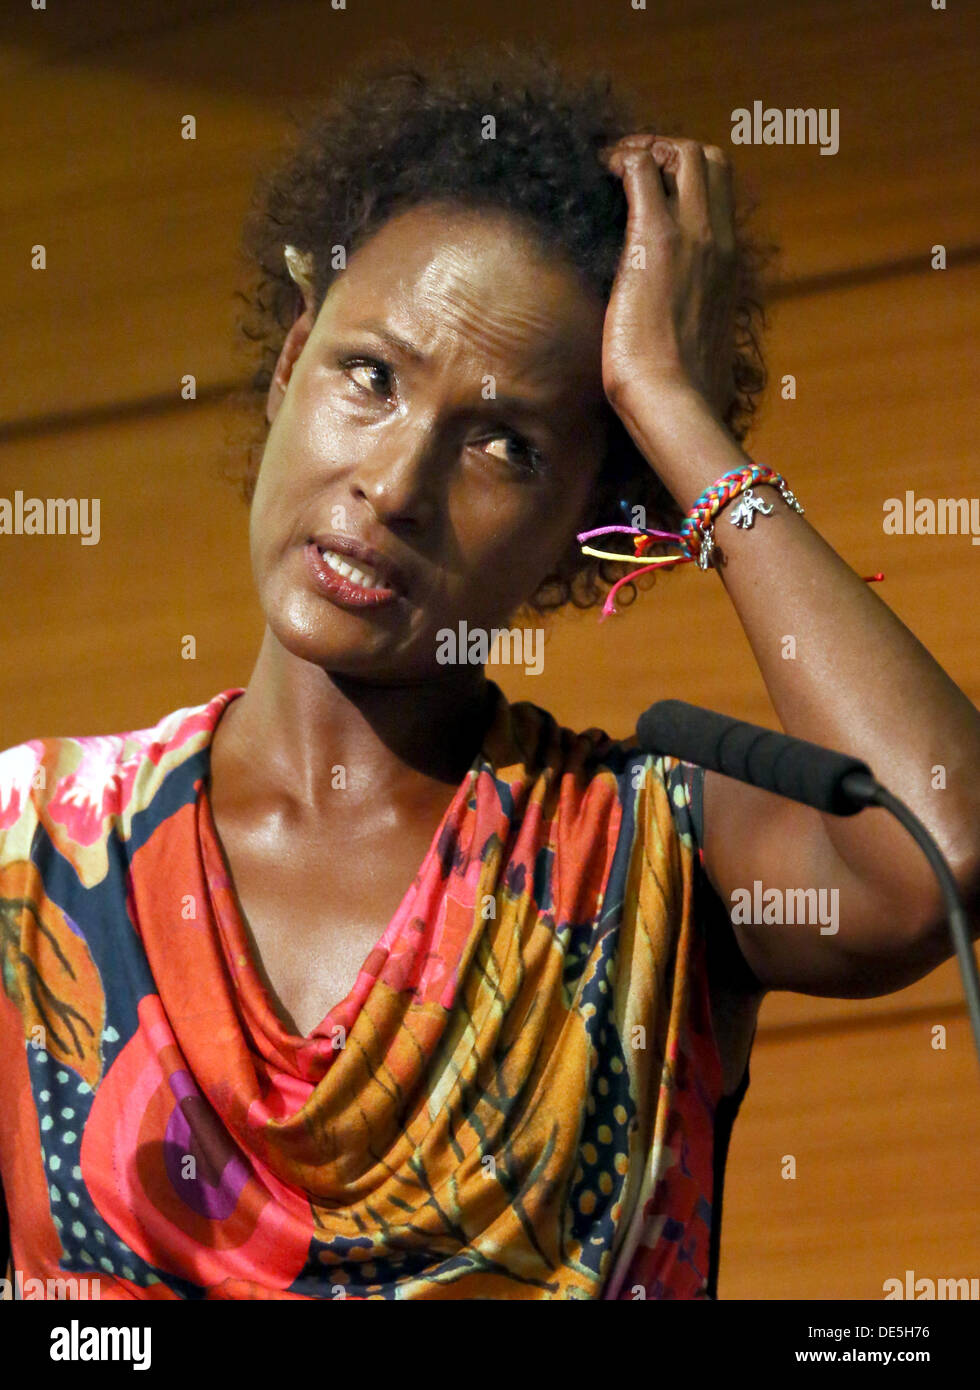 Waris Dirie, Somalian author of the bestseller 'Forest Flower' and activist against female genital cutting speaks at the opening of the 'Desert Flower Centre' of which she is a patron at hospital Waldfriede in Berlin, Germany, 11 September 2013. The centre is the first hospital in Europe that treats women with femal gentical cutting psychologically and surgically. Photo: STEPHANIE PILICK - Stock Image